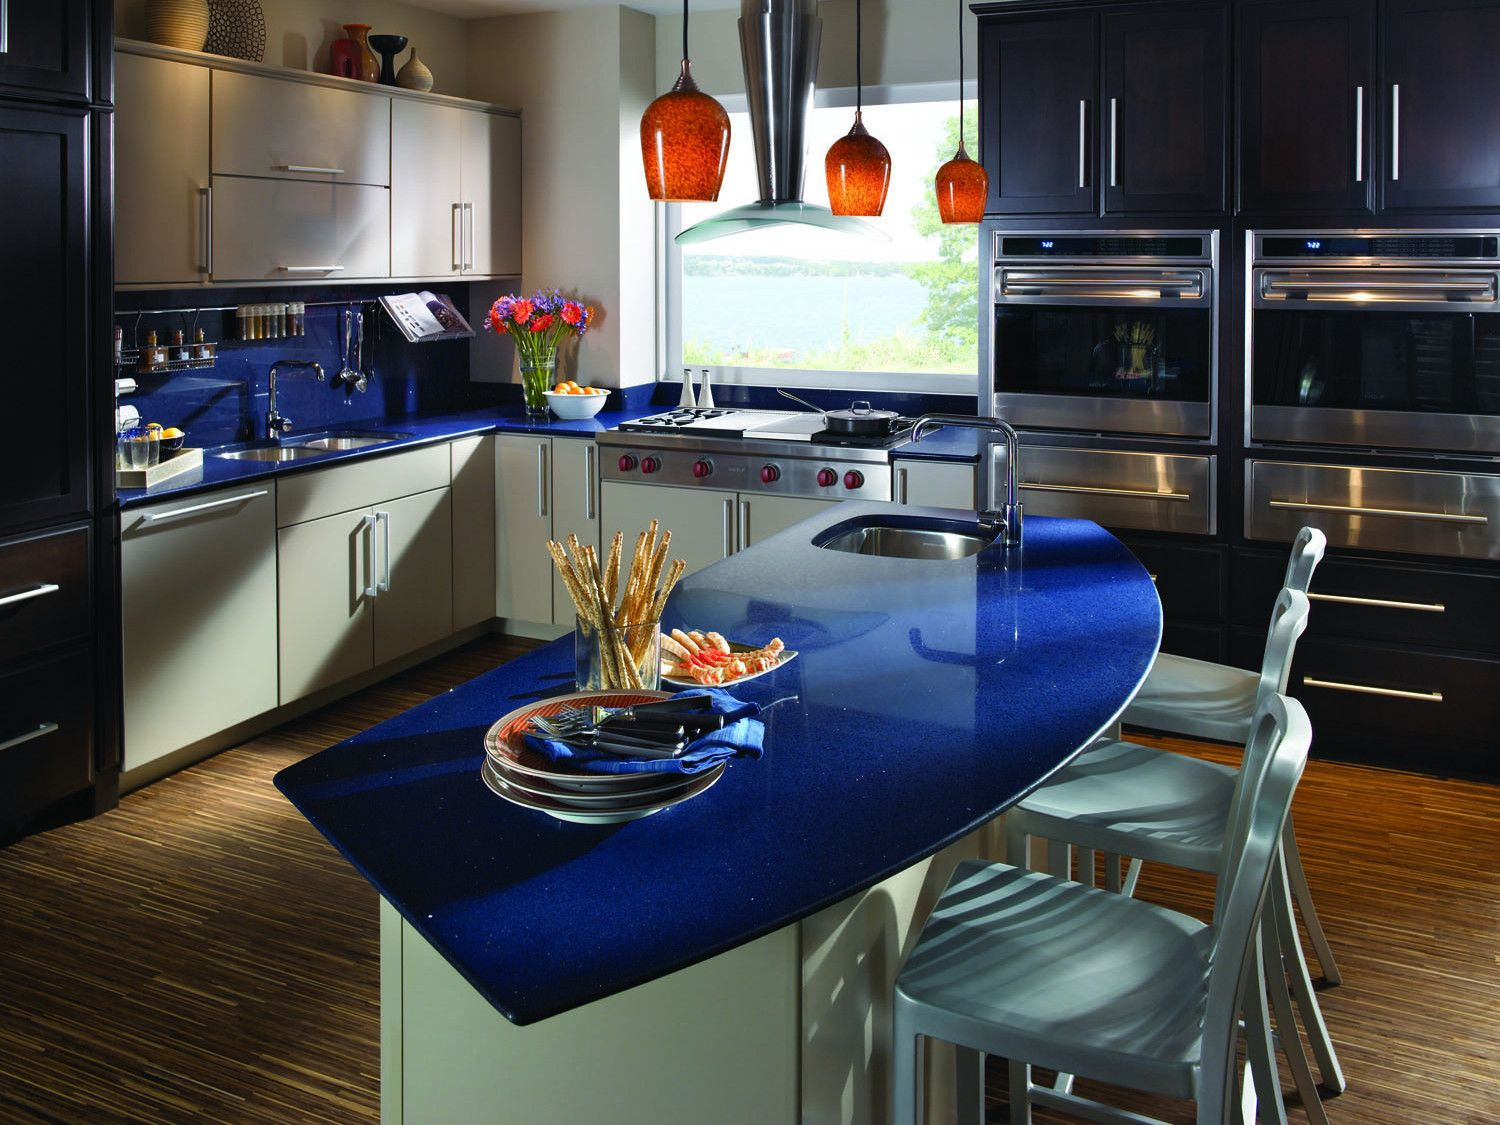 Blue Quartz Countertops In Kitchen | Buy Countertops In Greater Boston, MA  Area Kitchen Bath